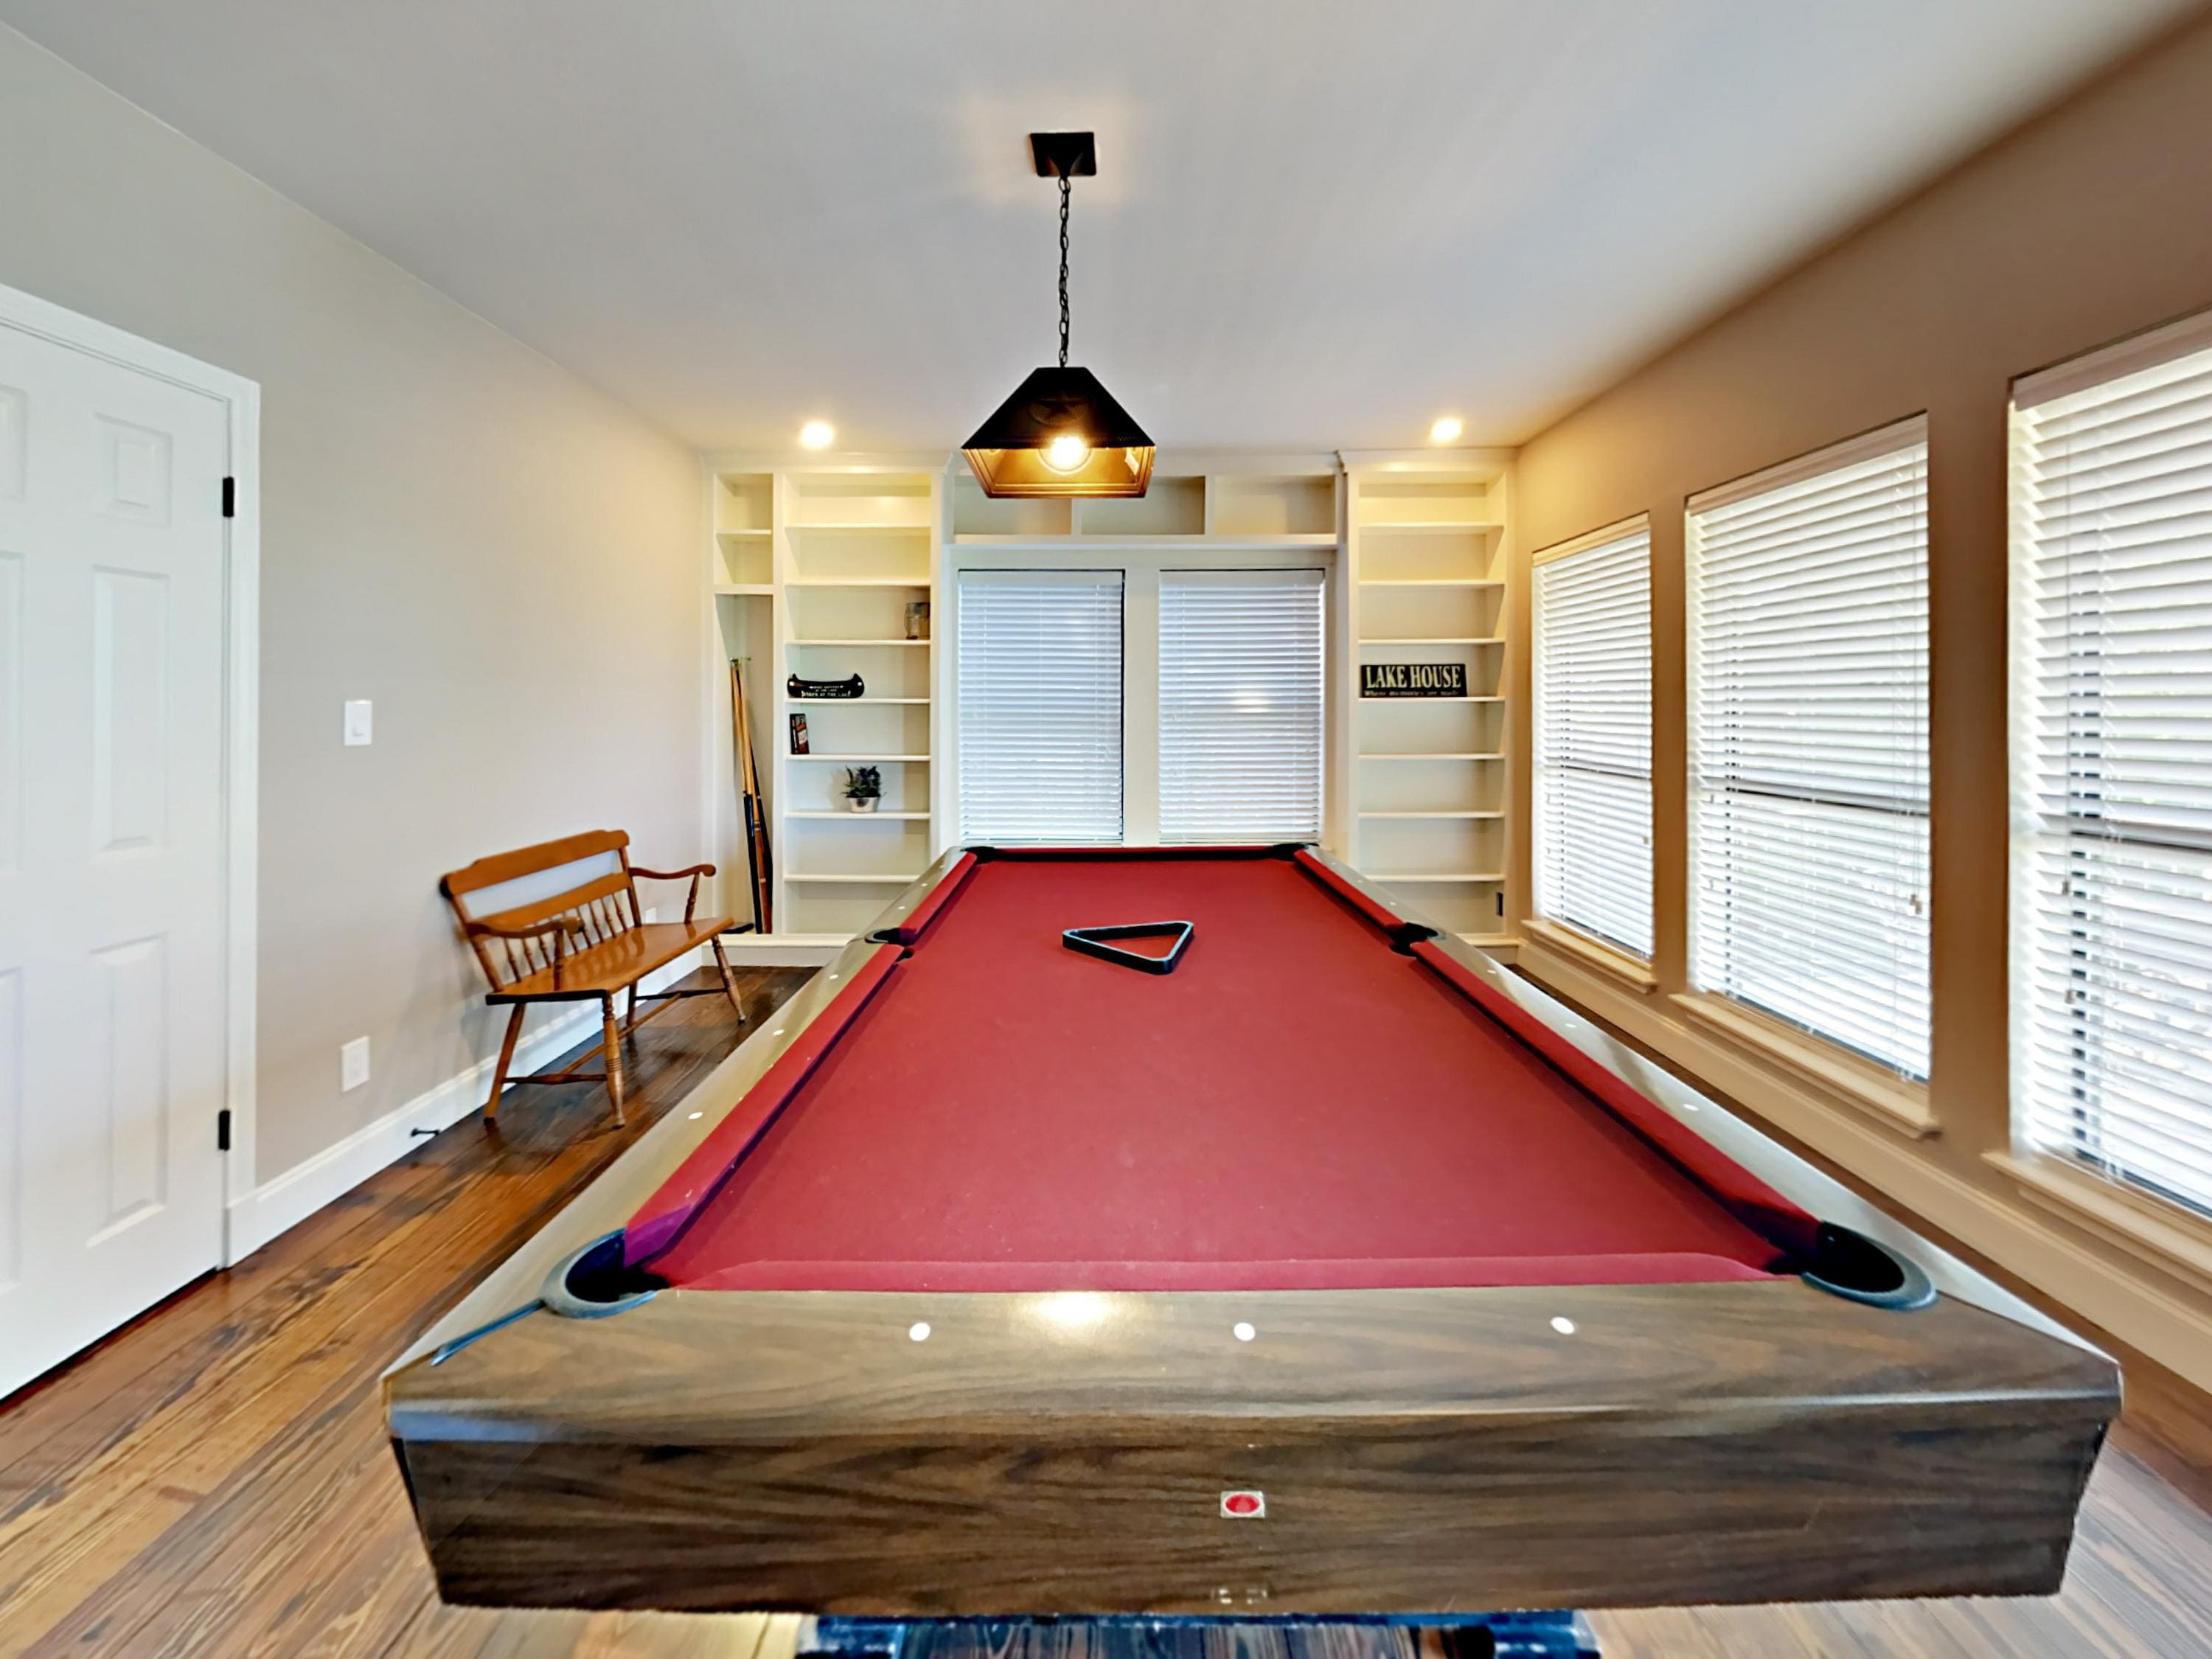 Play billiards in the game room.